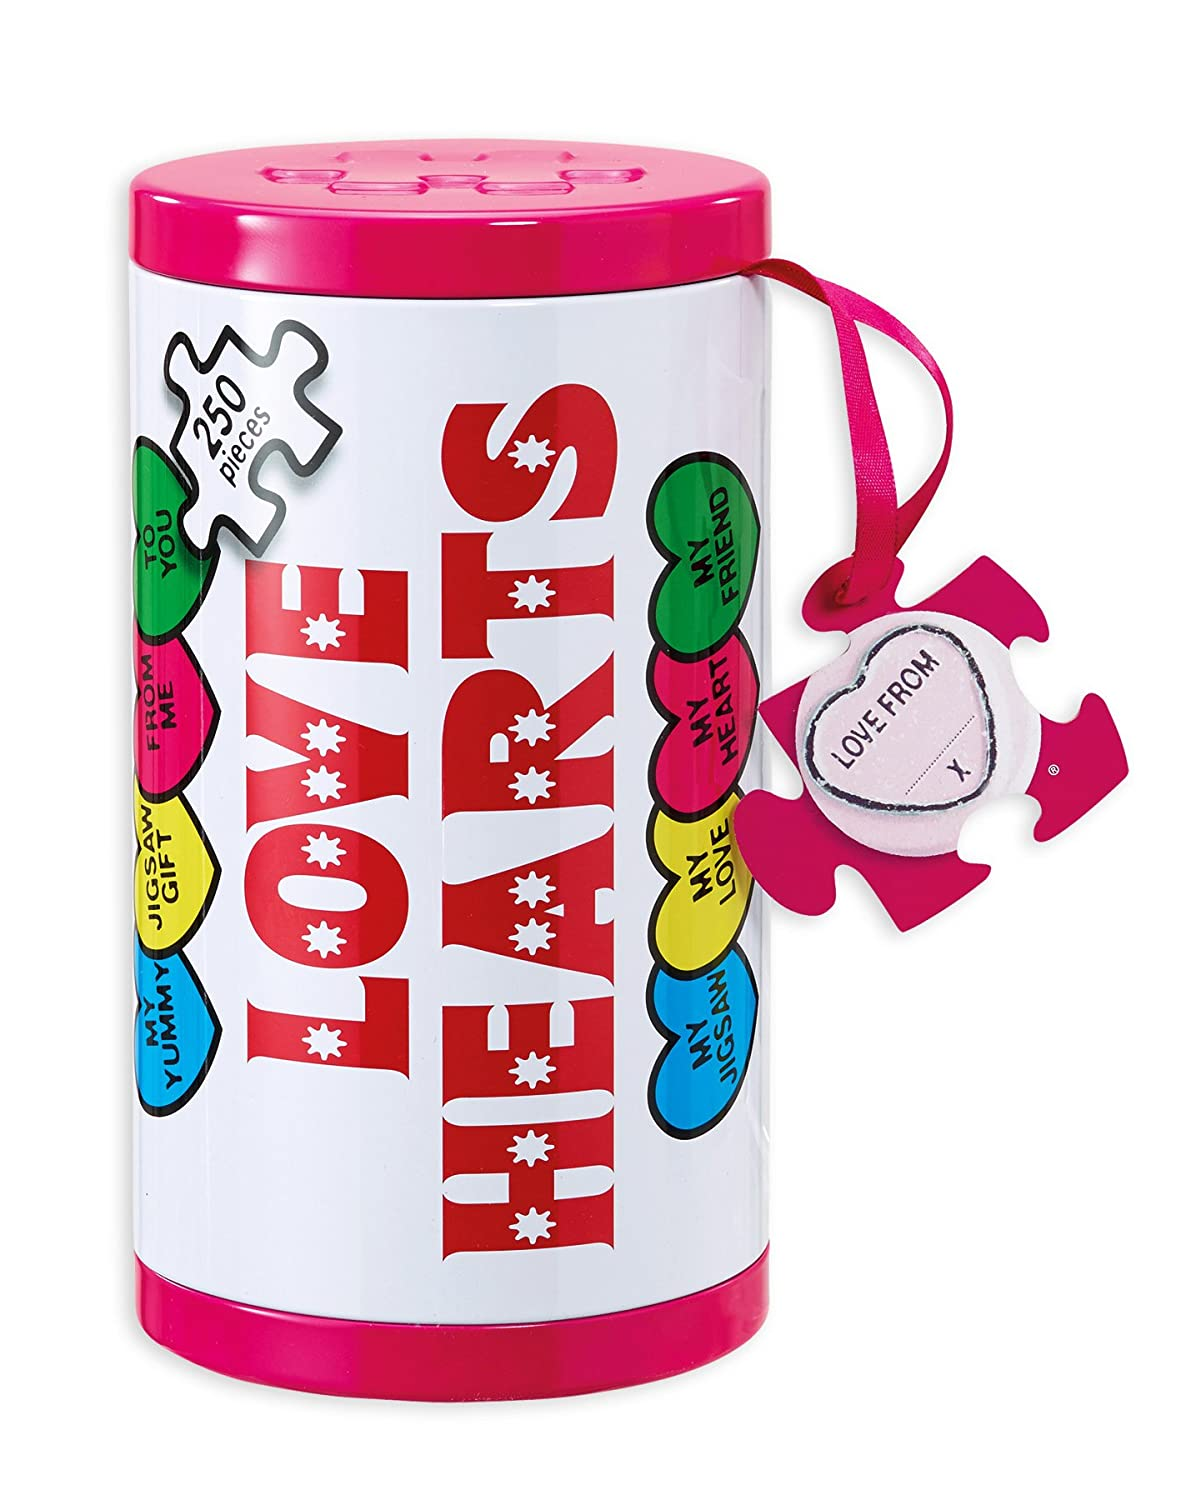 GIBSONS  JIGSAW PUZZLE 250 Piece LOVE HEARTS In a Tin